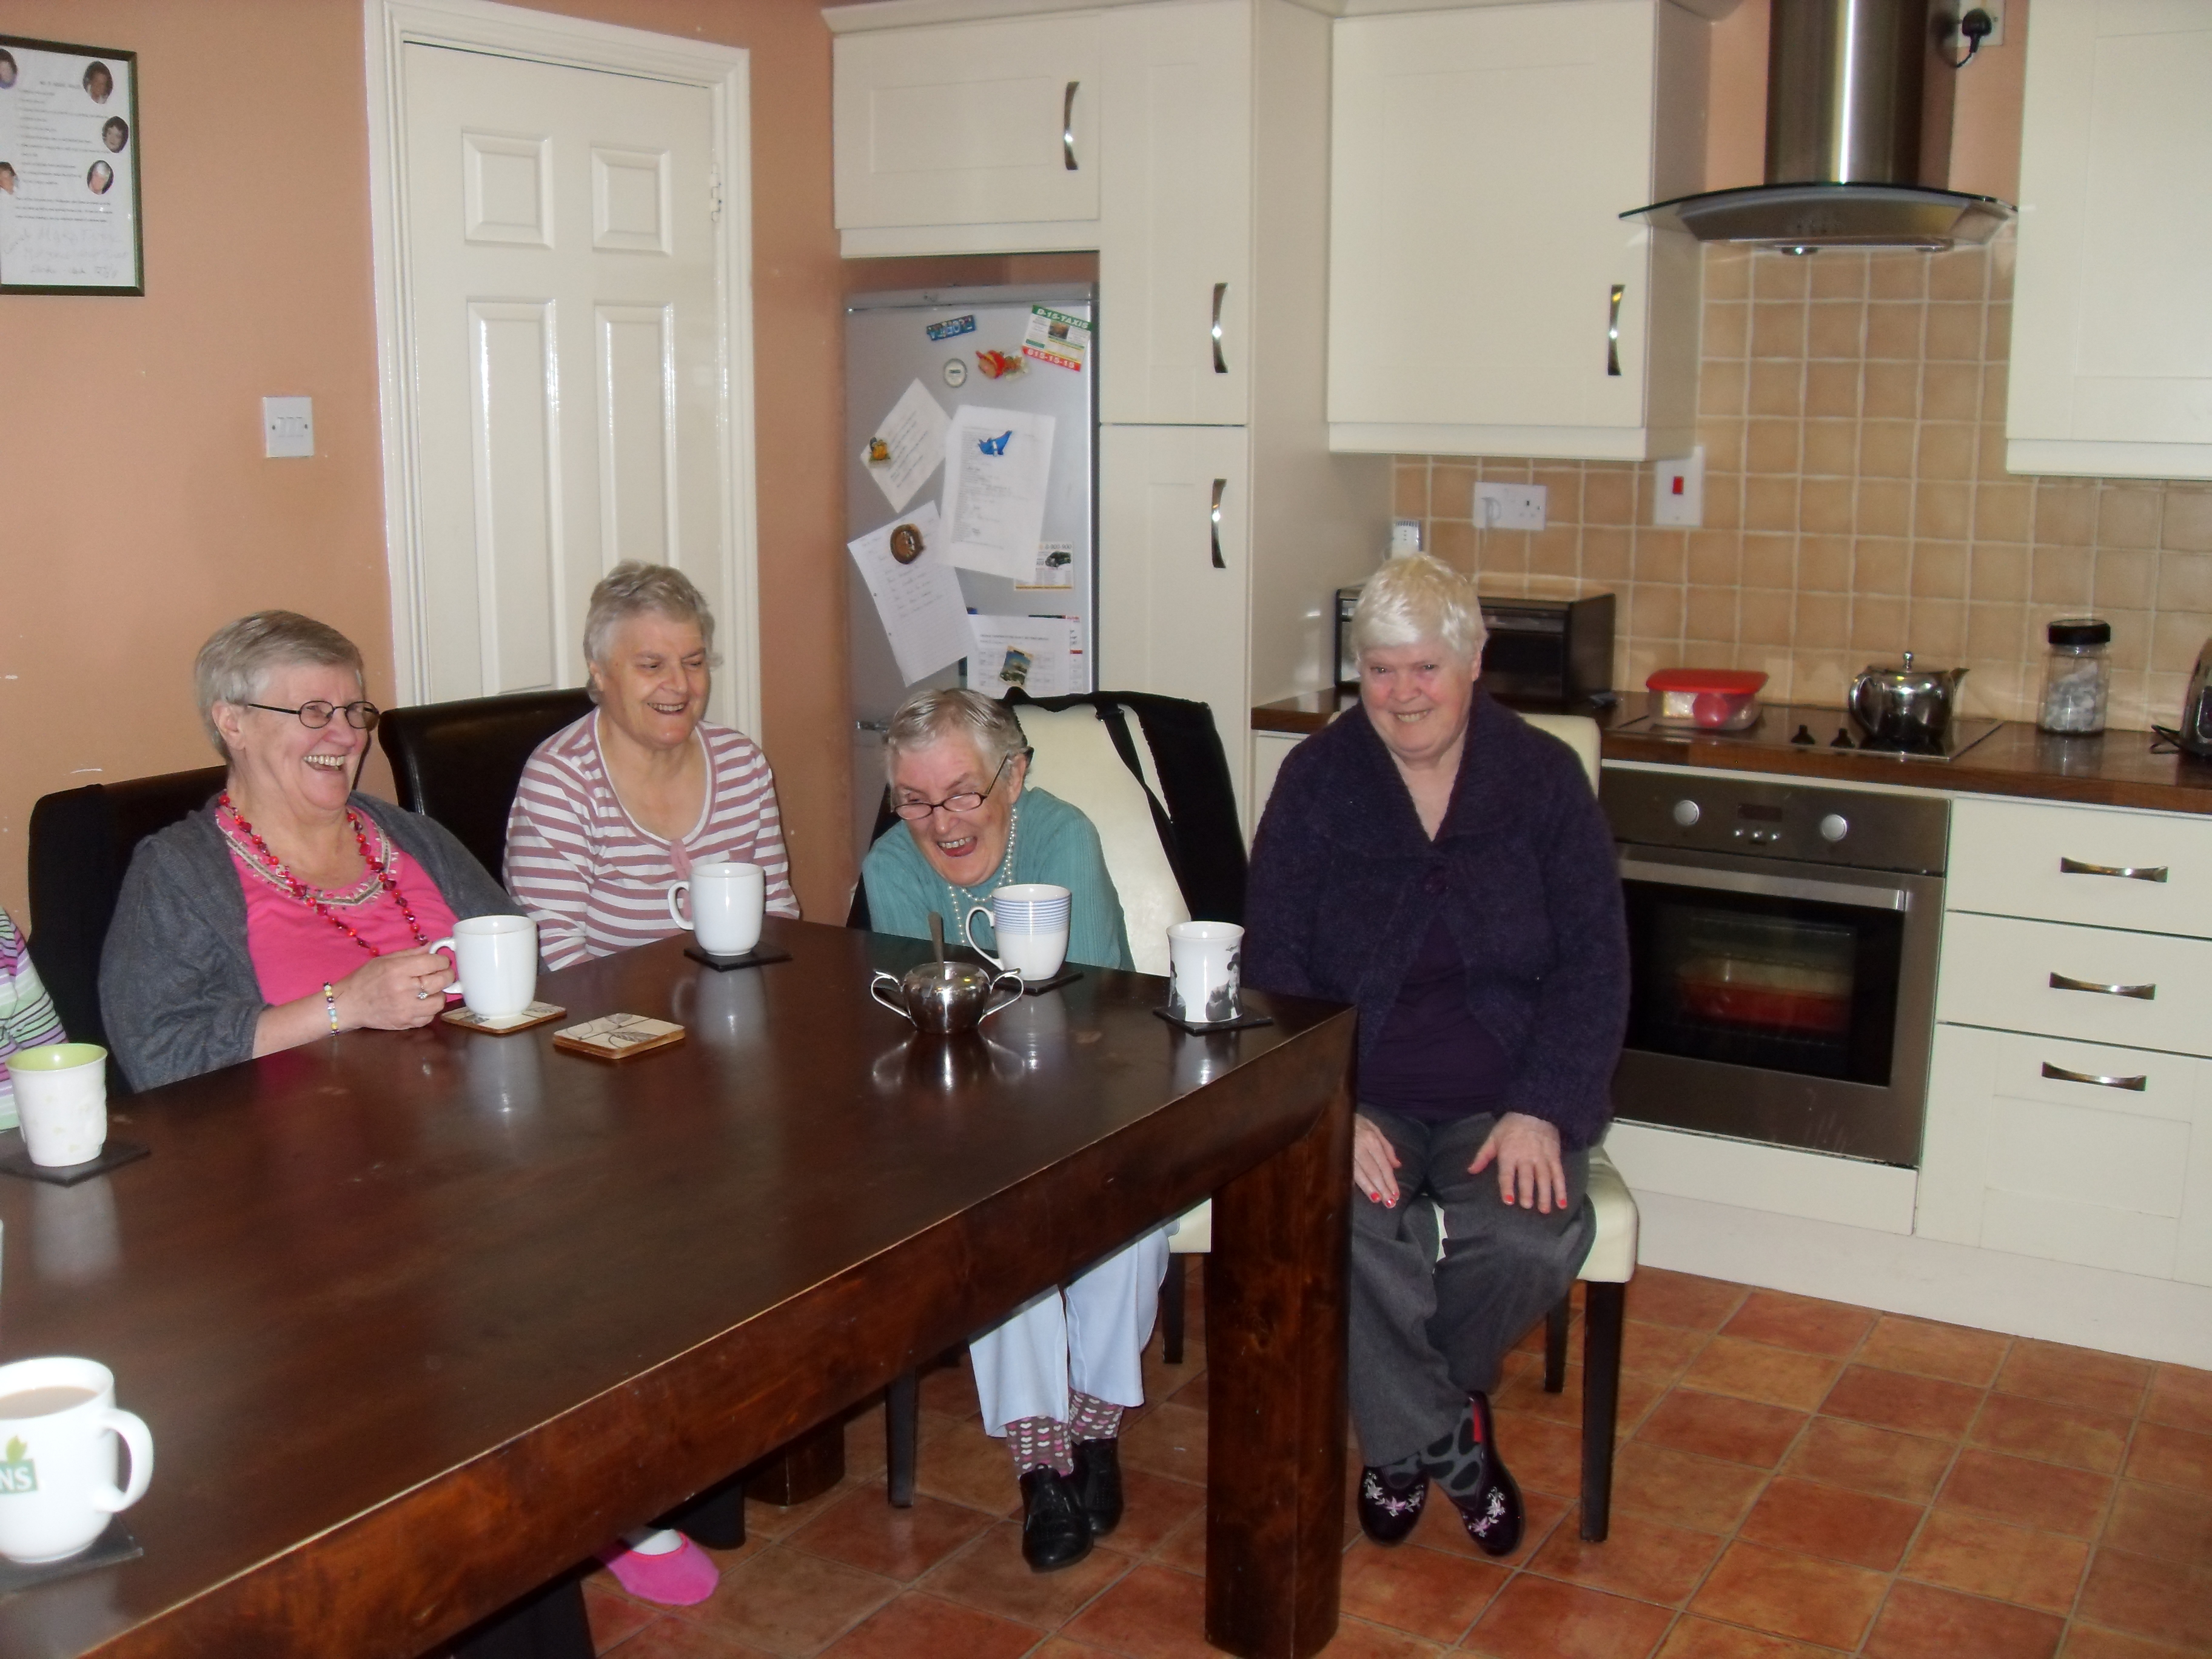 People with an intellectual disability living in a care setting